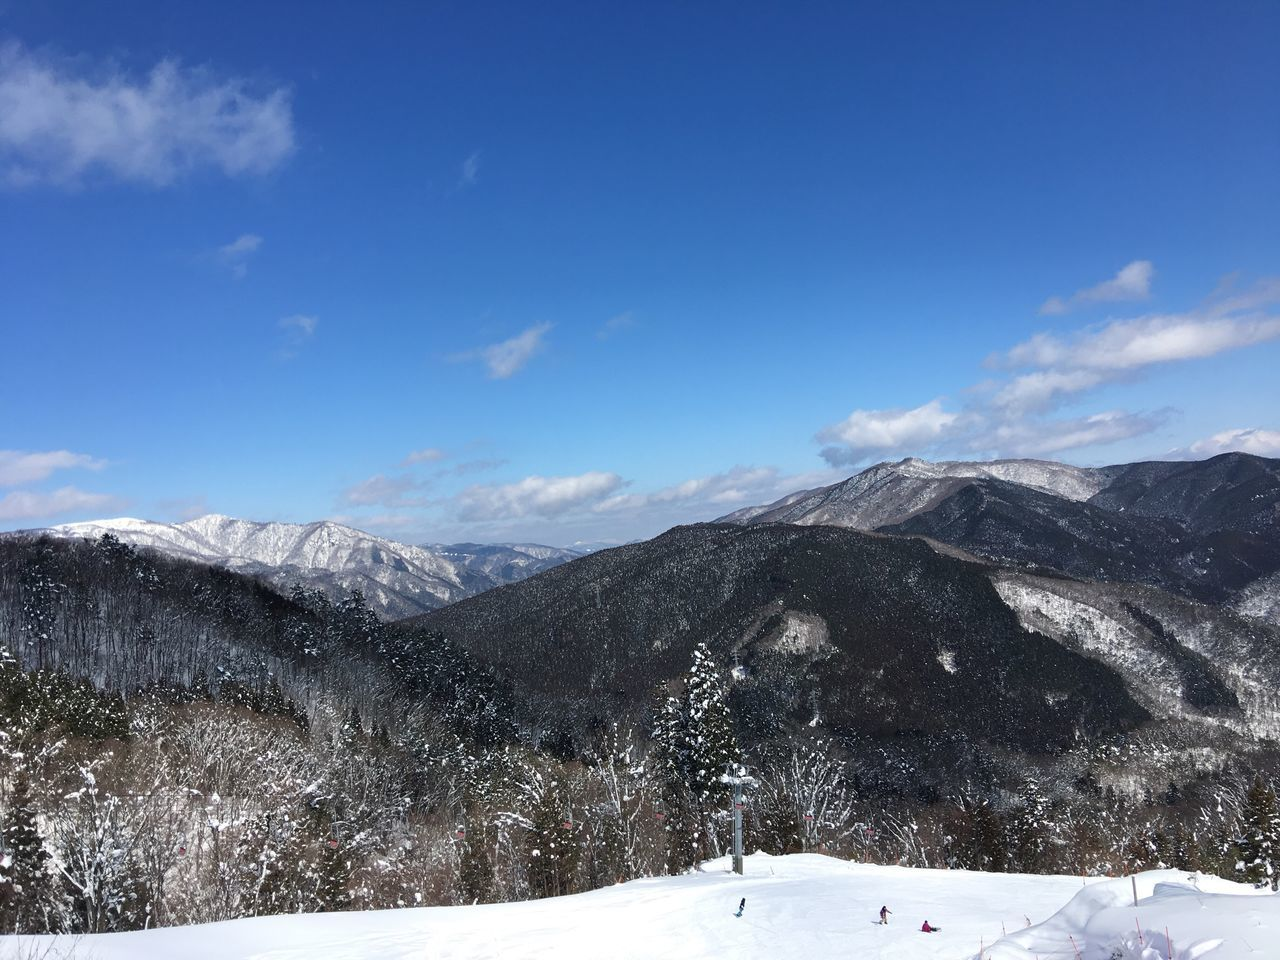 Snow Winter Mountain Beauty In Nature Cold Temperature Outdoors Ski Snowboarding Snowboard めがひら